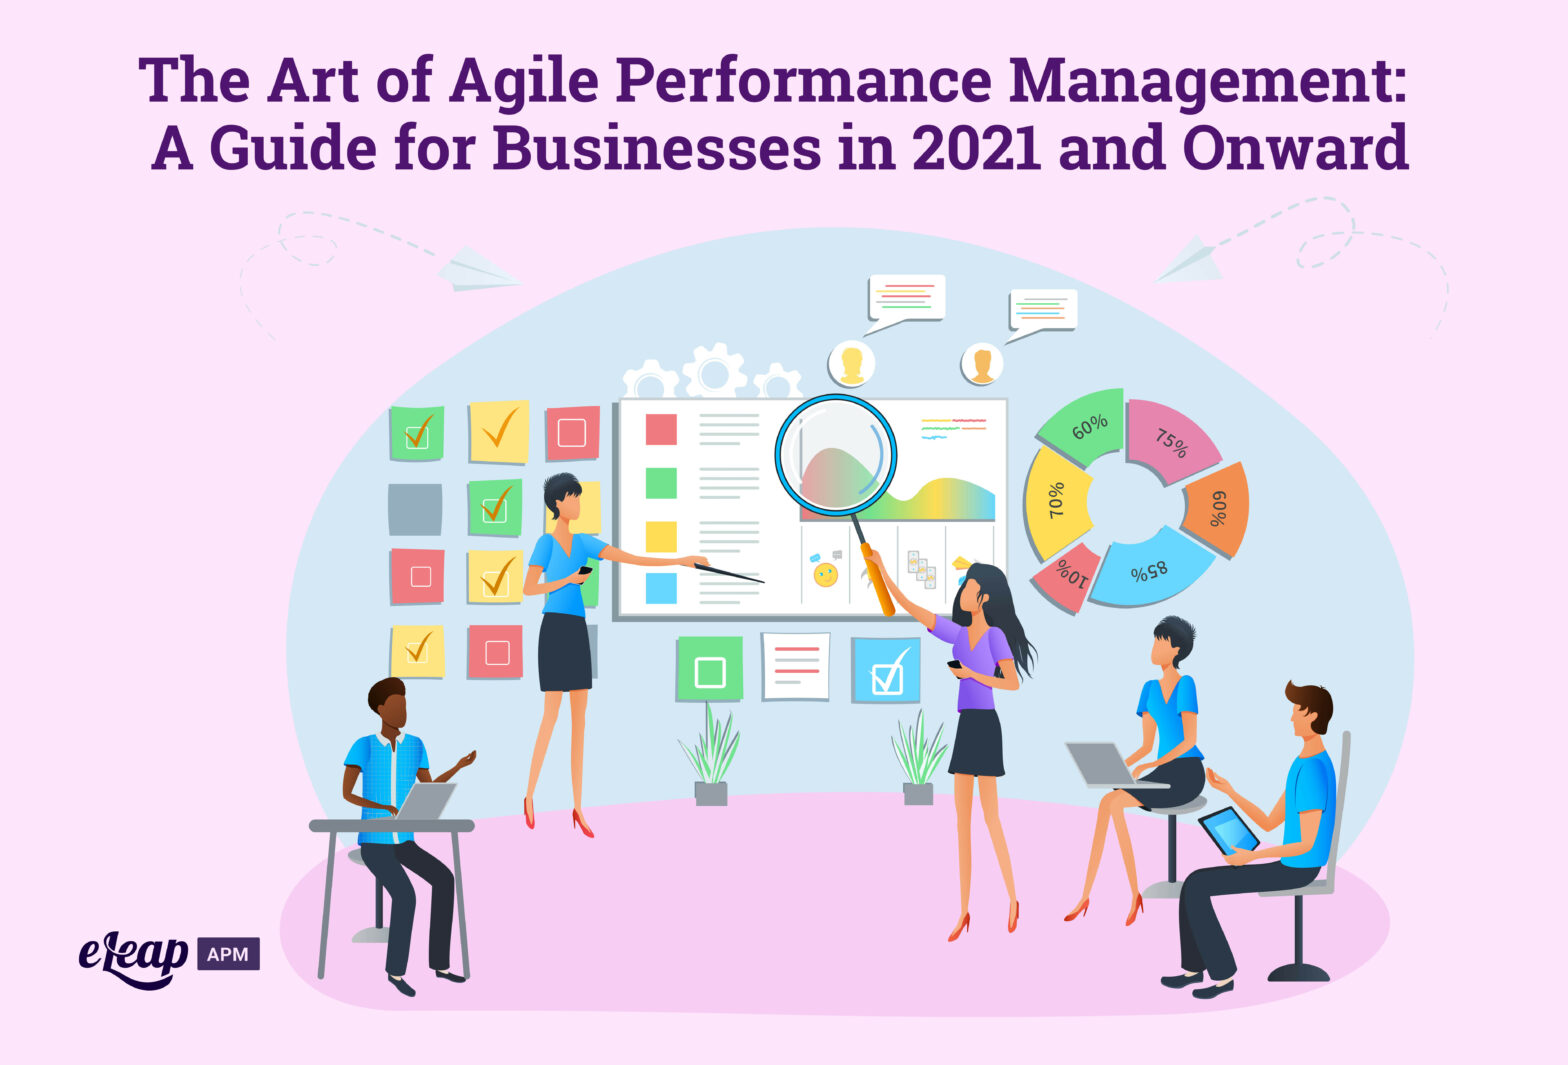 The Art of Agile Performance Management: A Guide for Businesses in 2021 and Onward